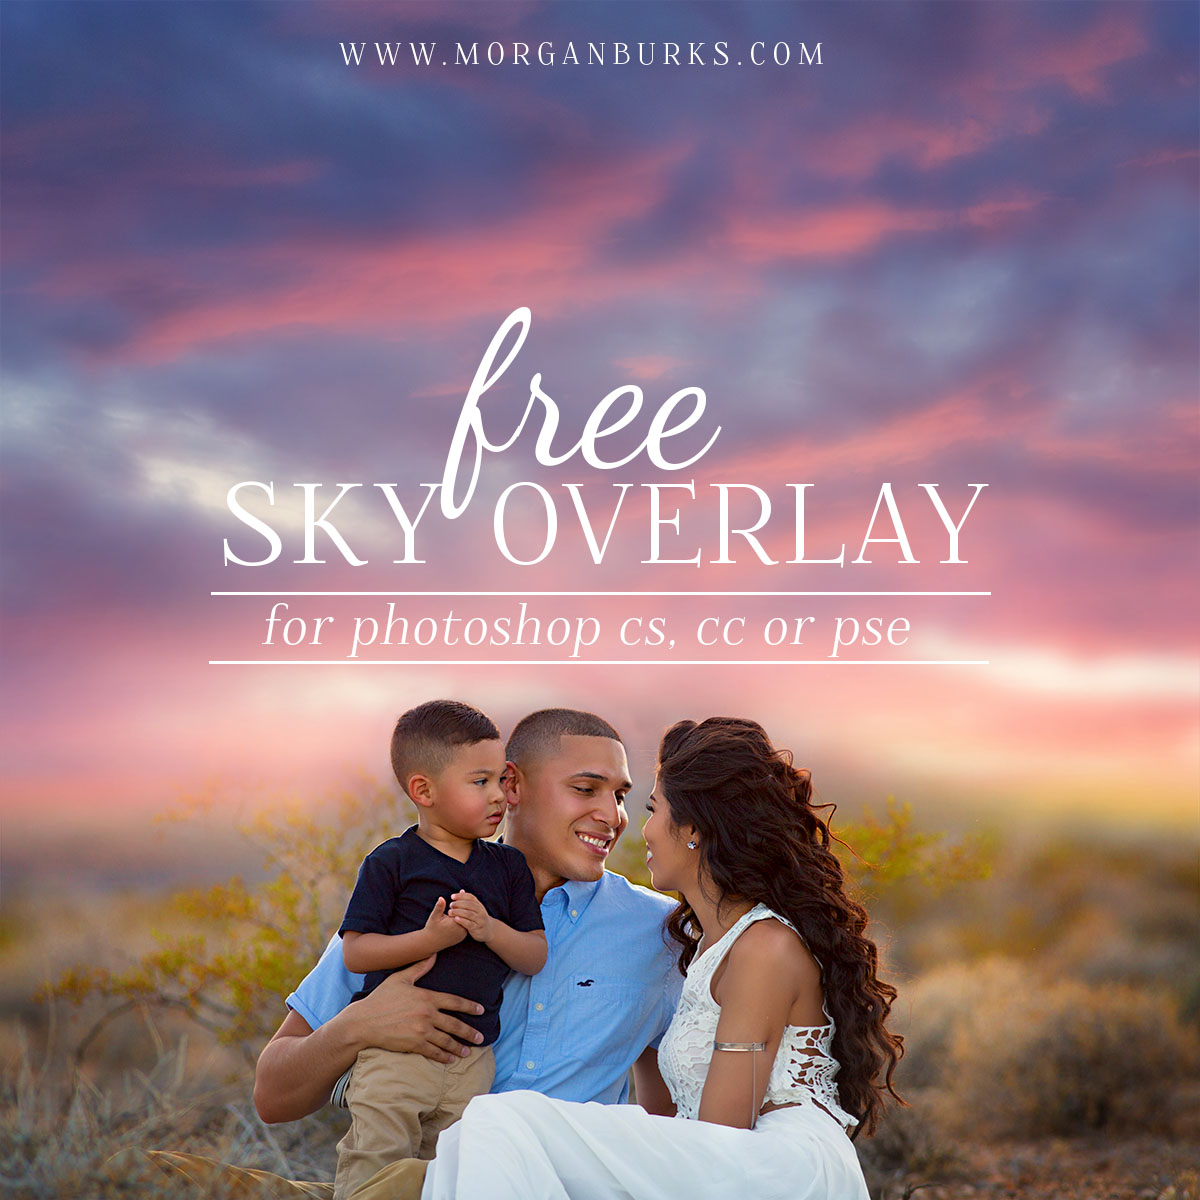 Free Sunset Sky Overlay For Photoshop and Elements – Morgan Burks